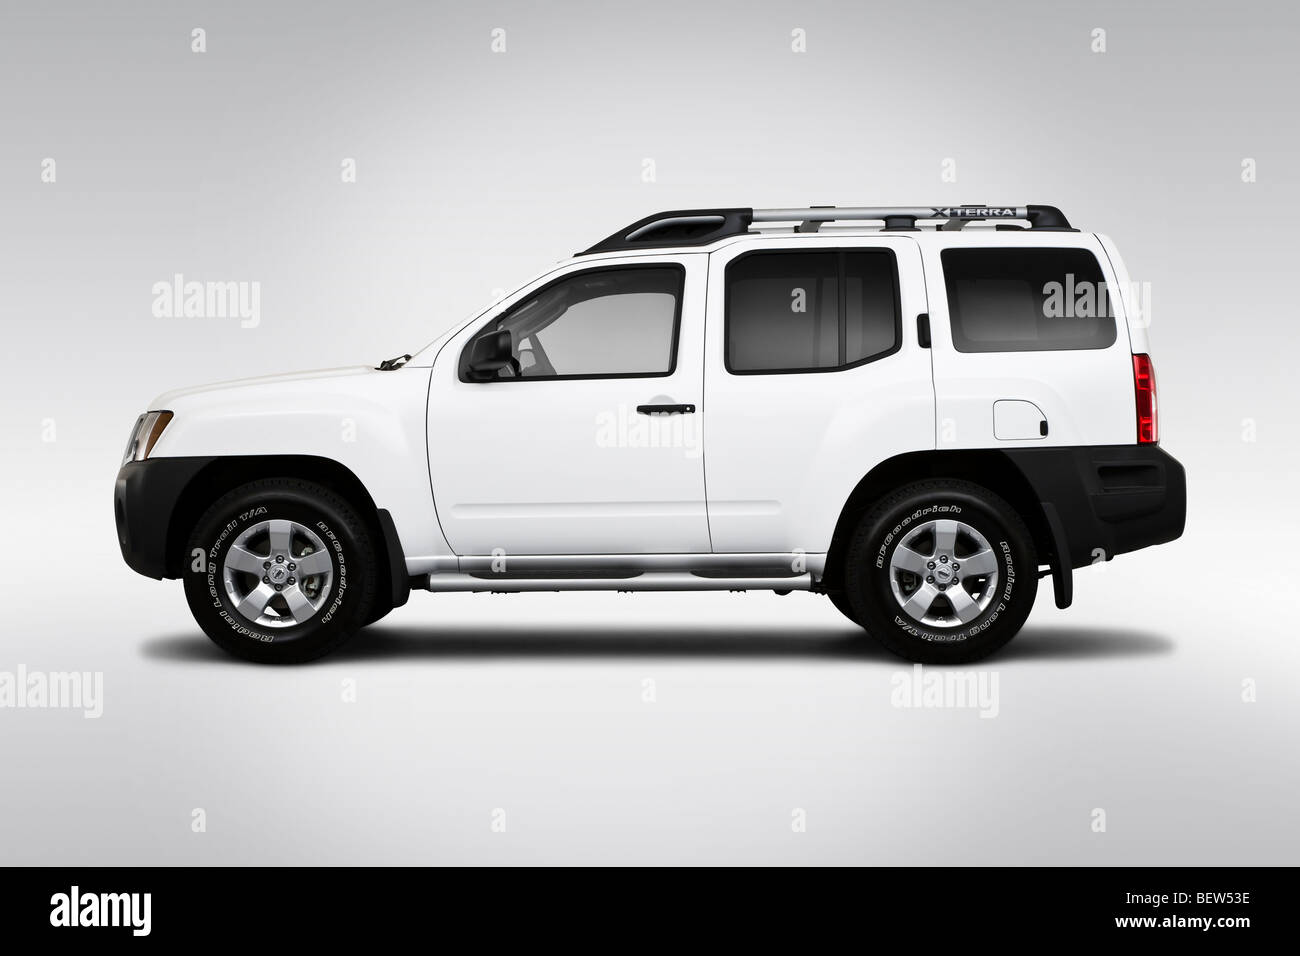 2010 nissan xterra s in white - drivers side profile stock photo